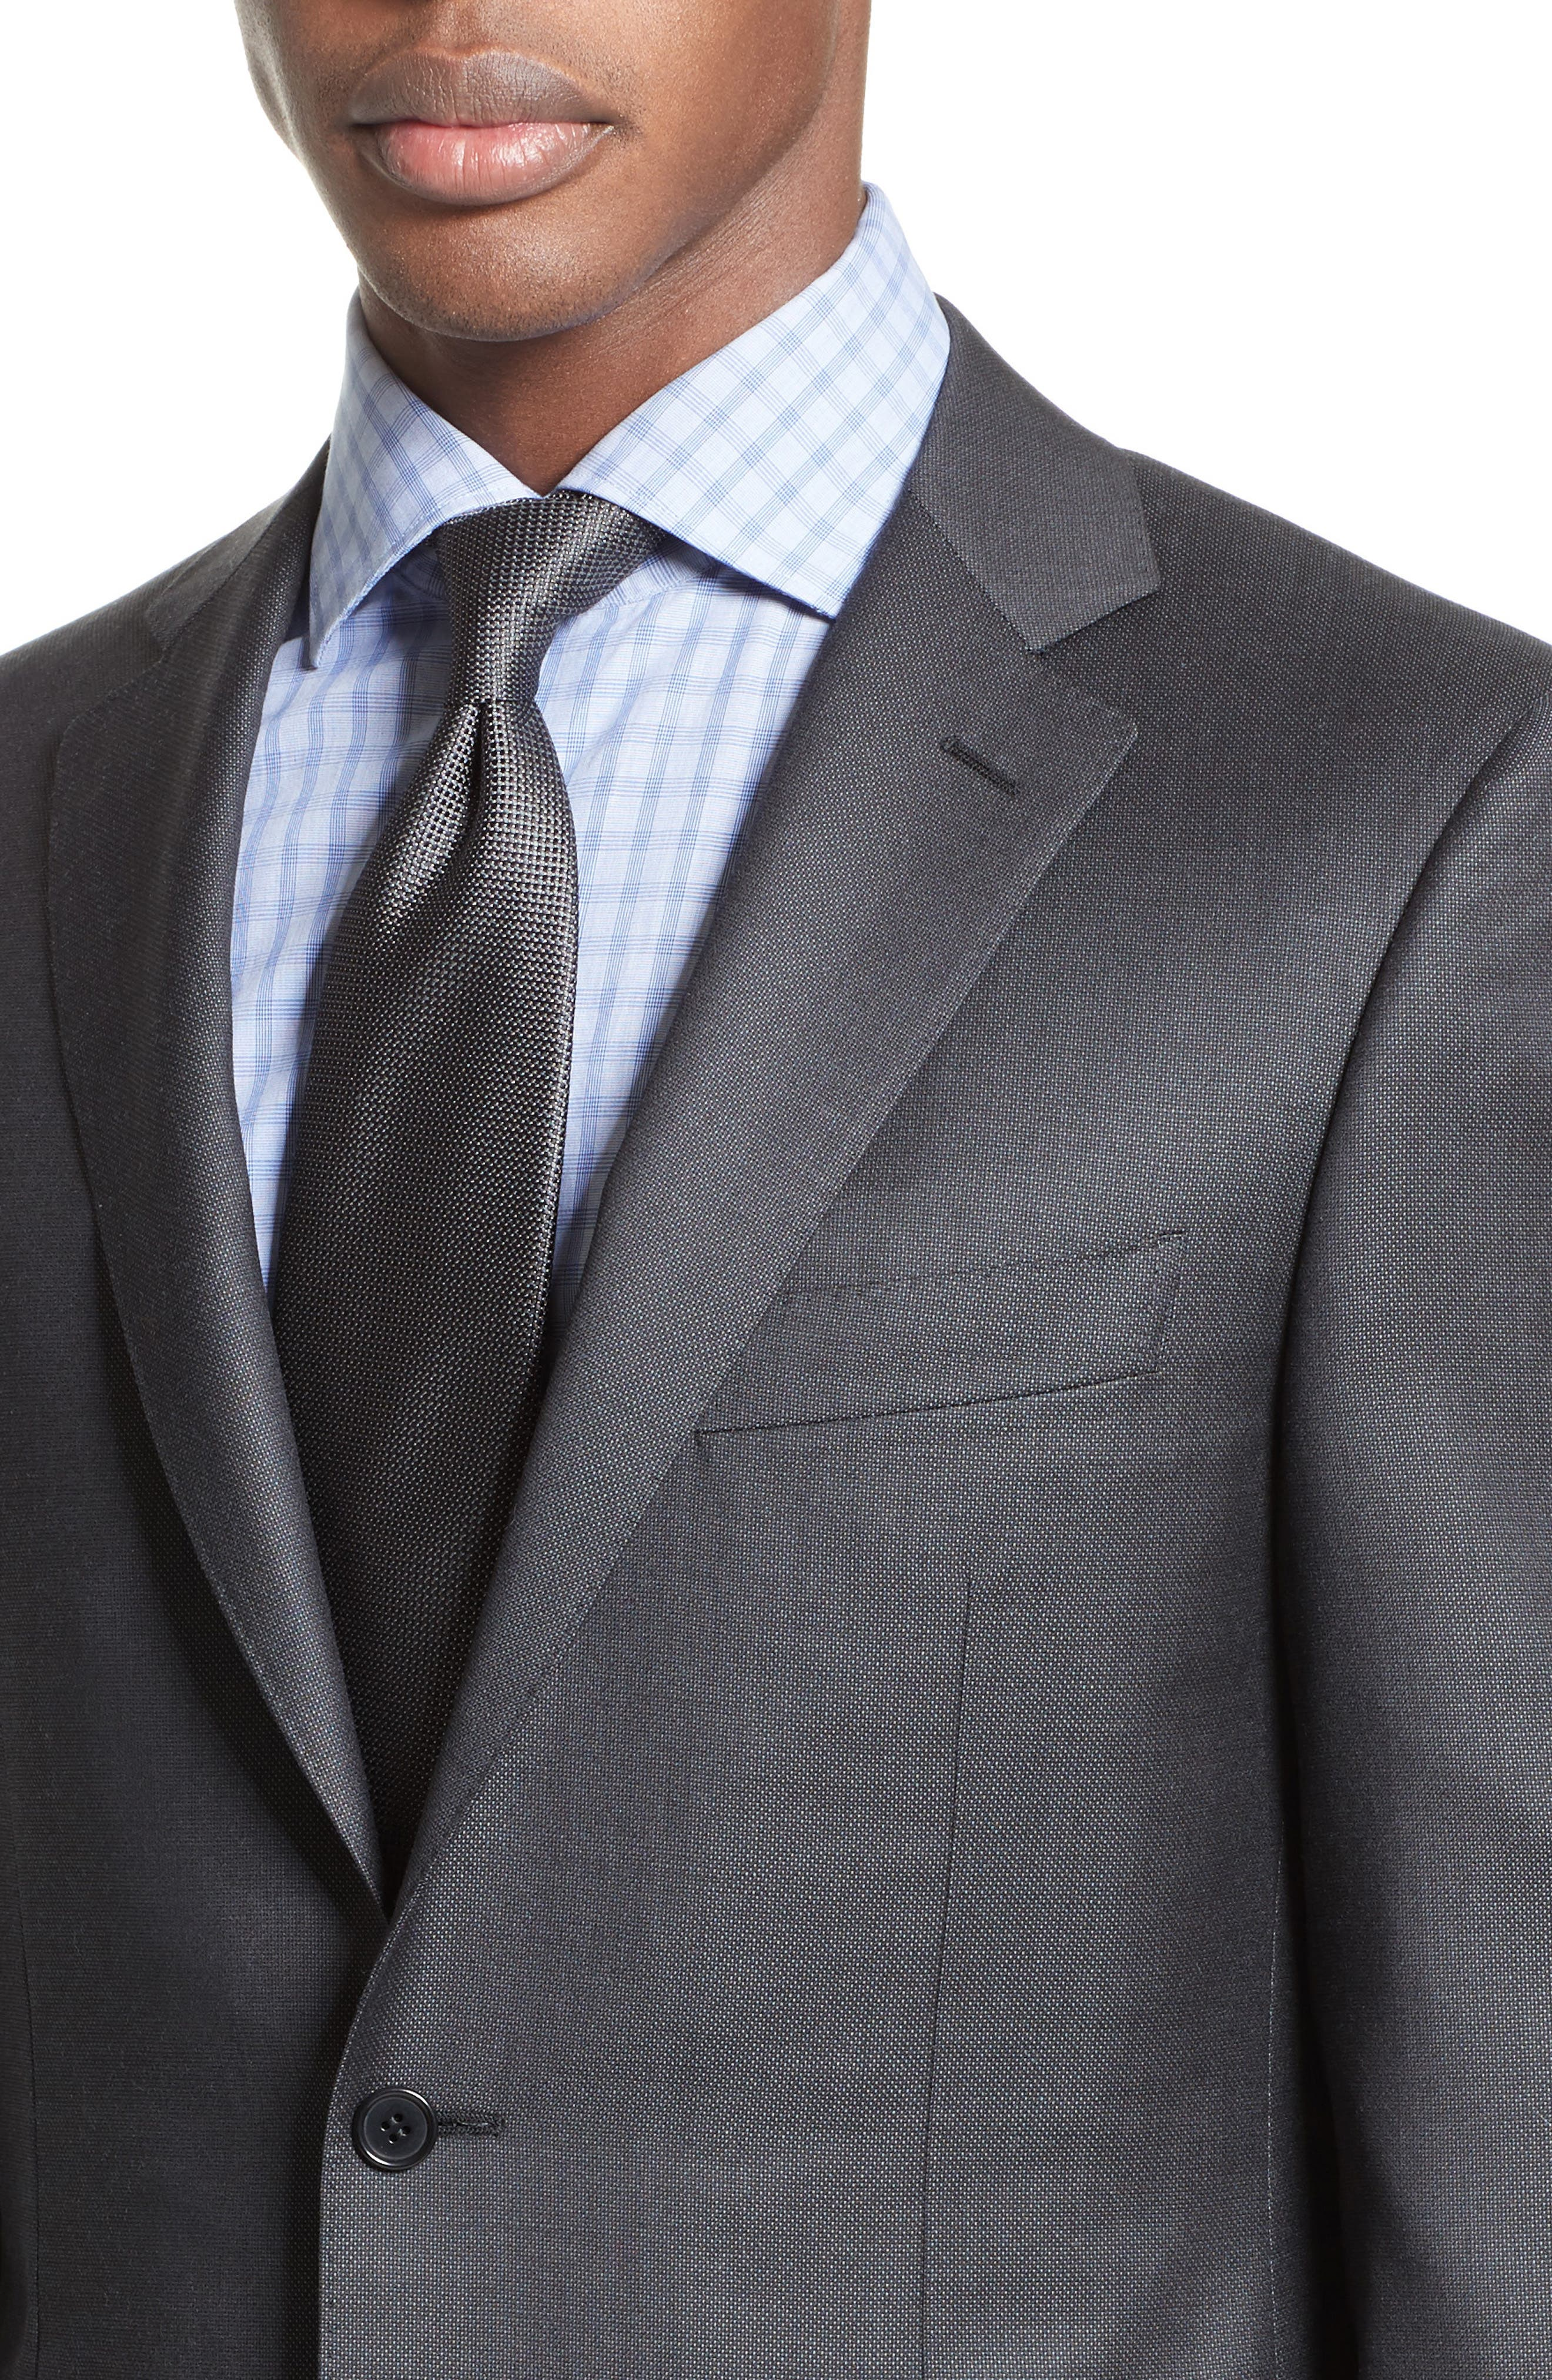 Classic Fit Solid Wool Suit,                             Alternate thumbnail 4, color,                             020